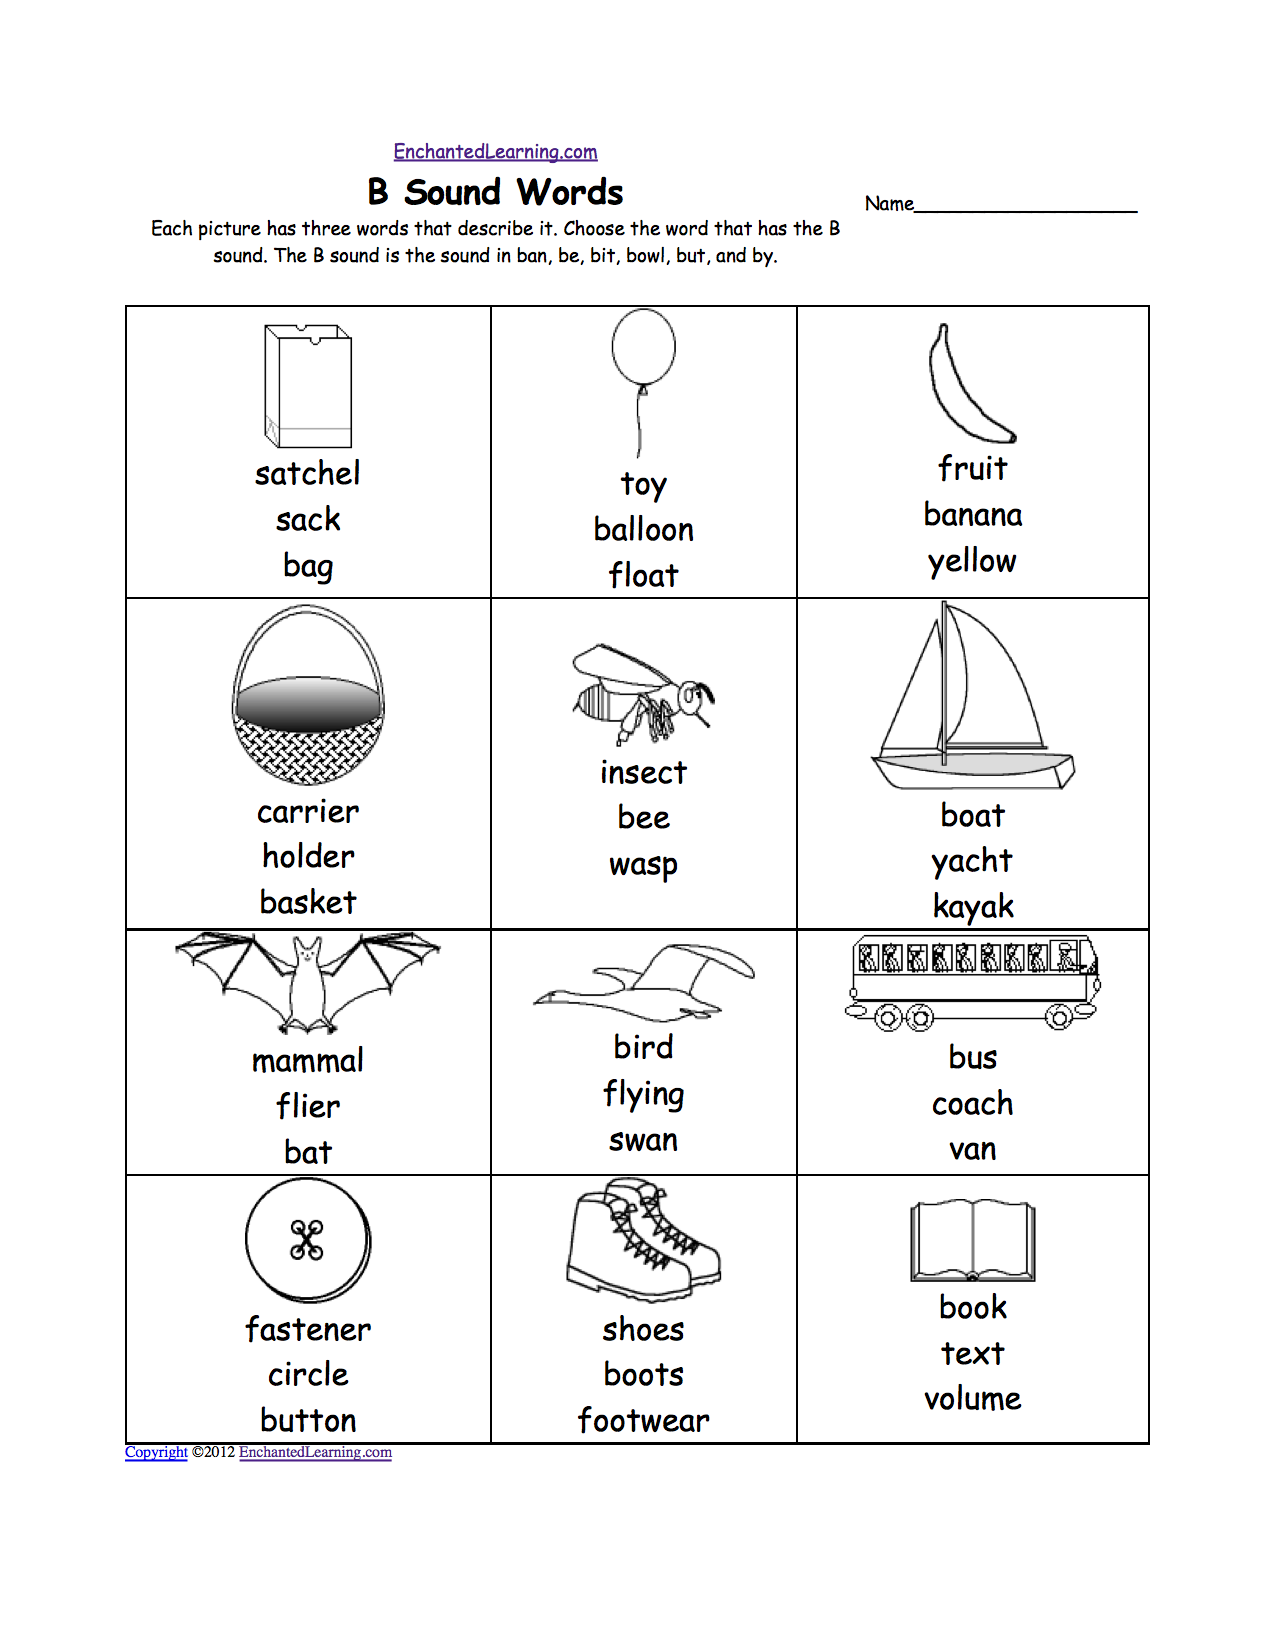 Aldiablosus  Remarkable Phonics Worksheets Multiple Choice Worksheets To Print  With Fair Quotbquot Sound Phonics Worksheet Multiple Choice Each Picture Has Three Words That Describe It Choose The Word That Has A Quotbquot Sound The Quotbquot Sound Is The Sound  With Delightful Free Graph Worksheets Also Economics Supply And Demand Worksheets In Addition Nwea Math Practice Worksheets And  X  Multiplication Worksheets As Well As Factoring Math Worksheets Additionally Fact Family Worksheets St Grade From Enchantedlearningcom With Aldiablosus  Fair Phonics Worksheets Multiple Choice Worksheets To Print  With Delightful Quotbquot Sound Phonics Worksheet Multiple Choice Each Picture Has Three Words That Describe It Choose The Word That Has A Quotbquot Sound The Quotbquot Sound Is The Sound  And Remarkable Free Graph Worksheets Also Economics Supply And Demand Worksheets In Addition Nwea Math Practice Worksheets From Enchantedlearningcom